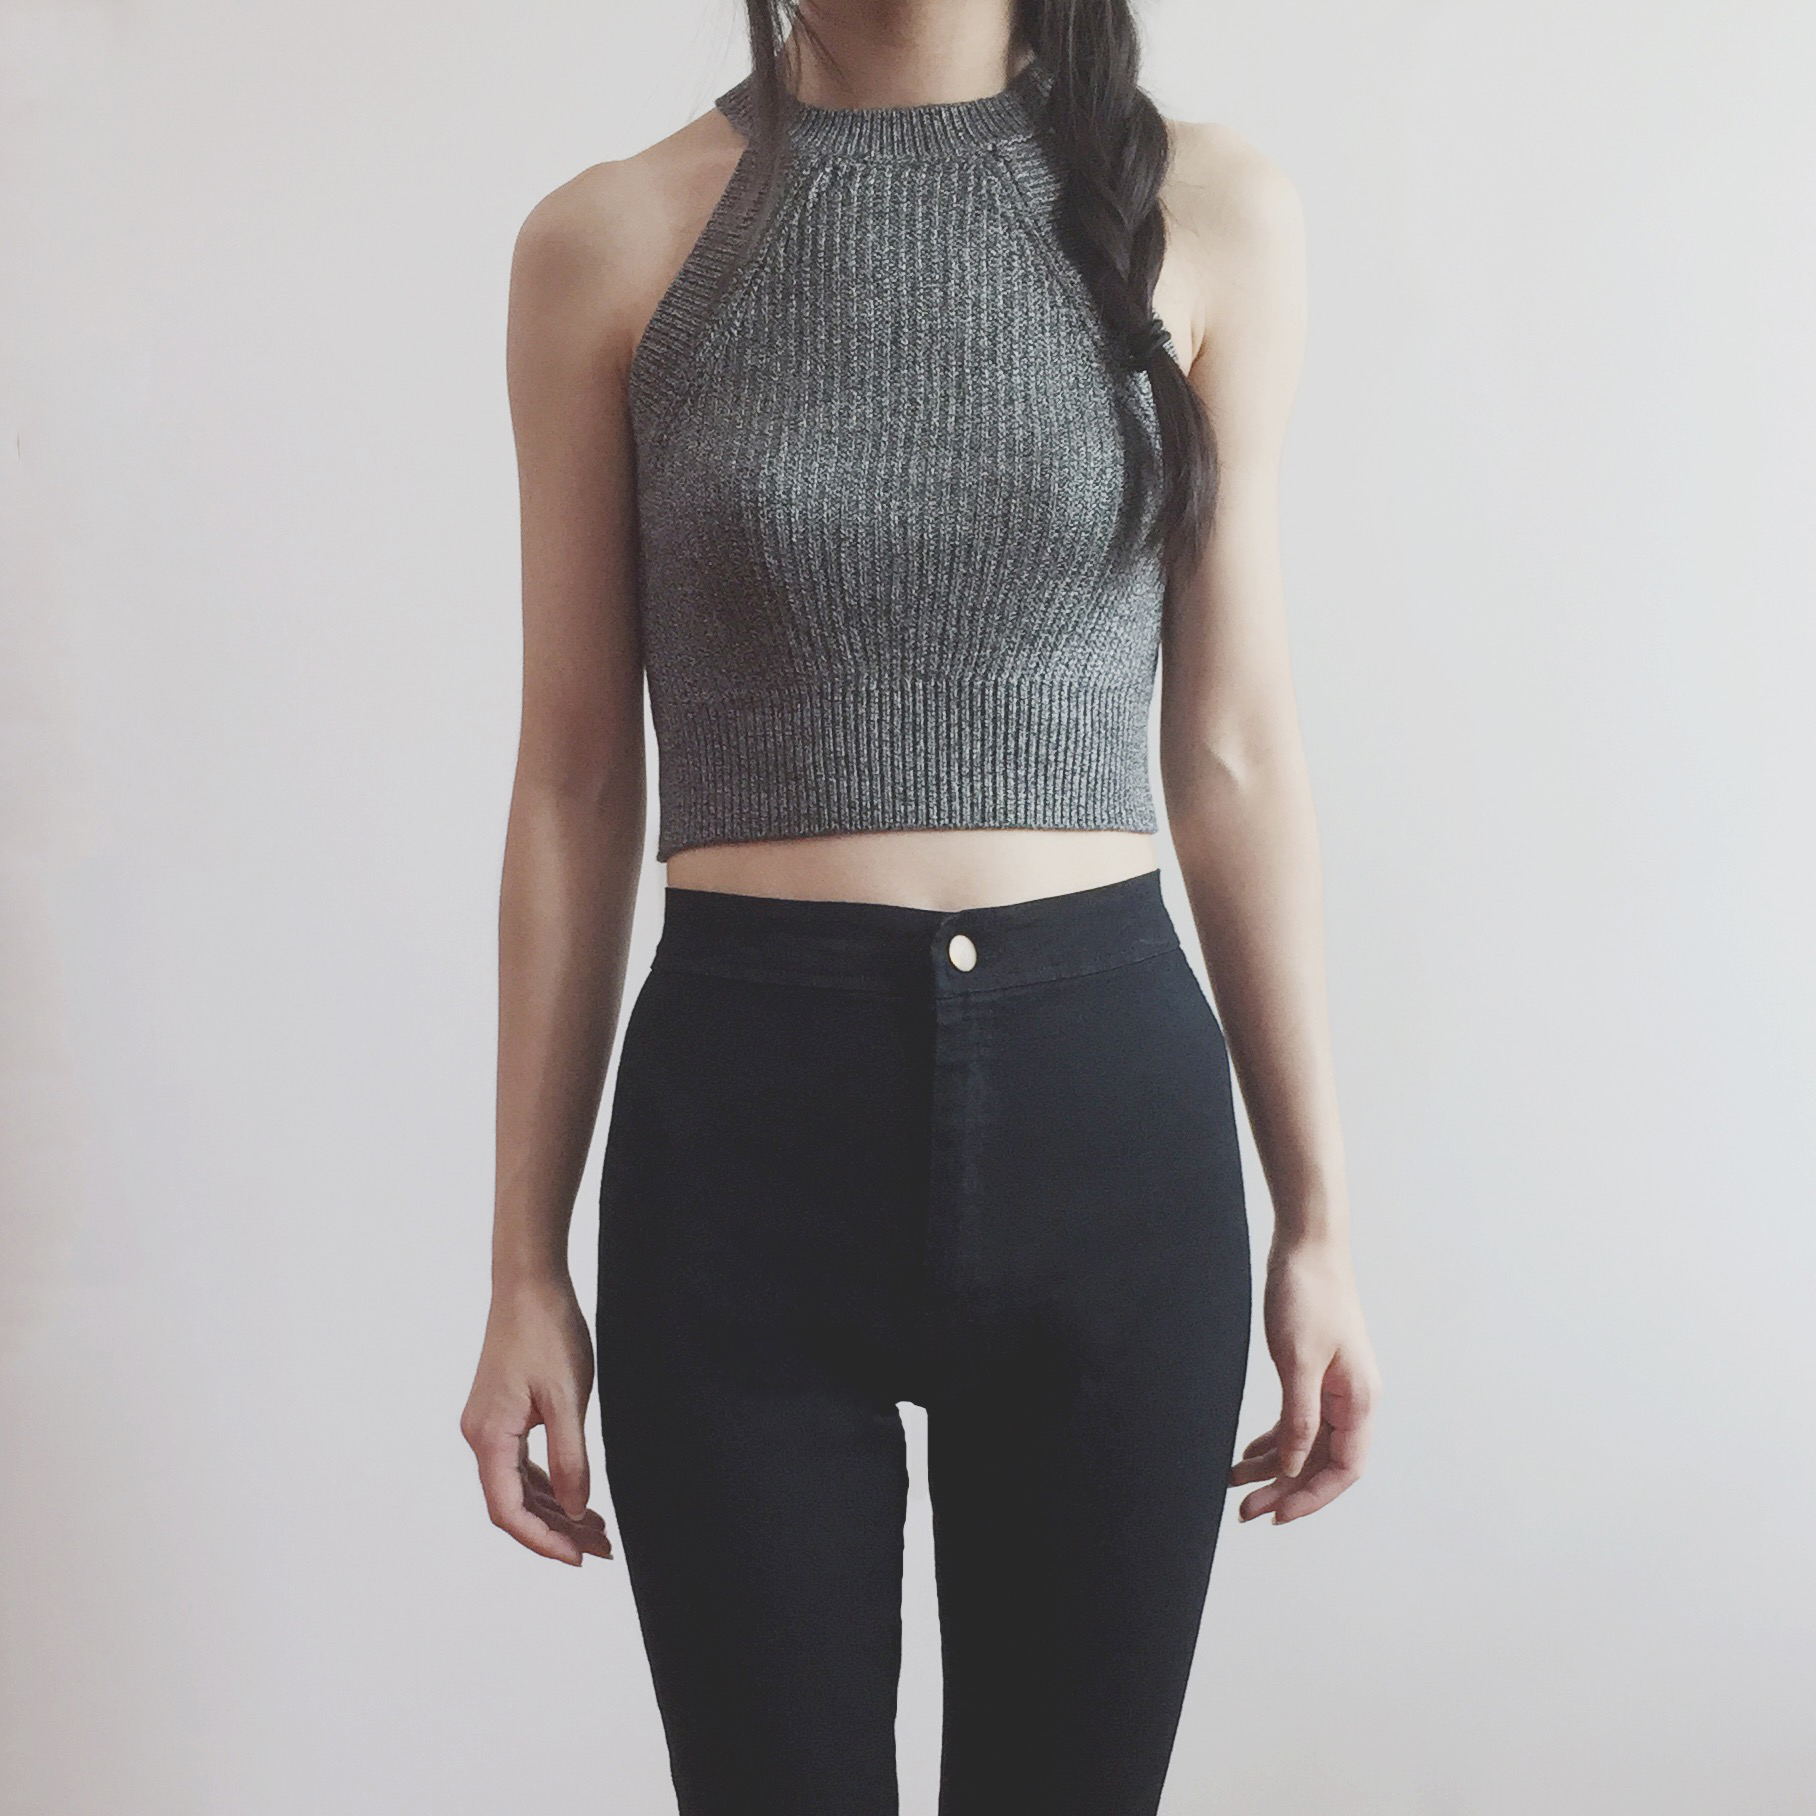 ec2cc759d738 Sweater Knit Halter Crop Top (Heather Grey) from Megoosta Fashion